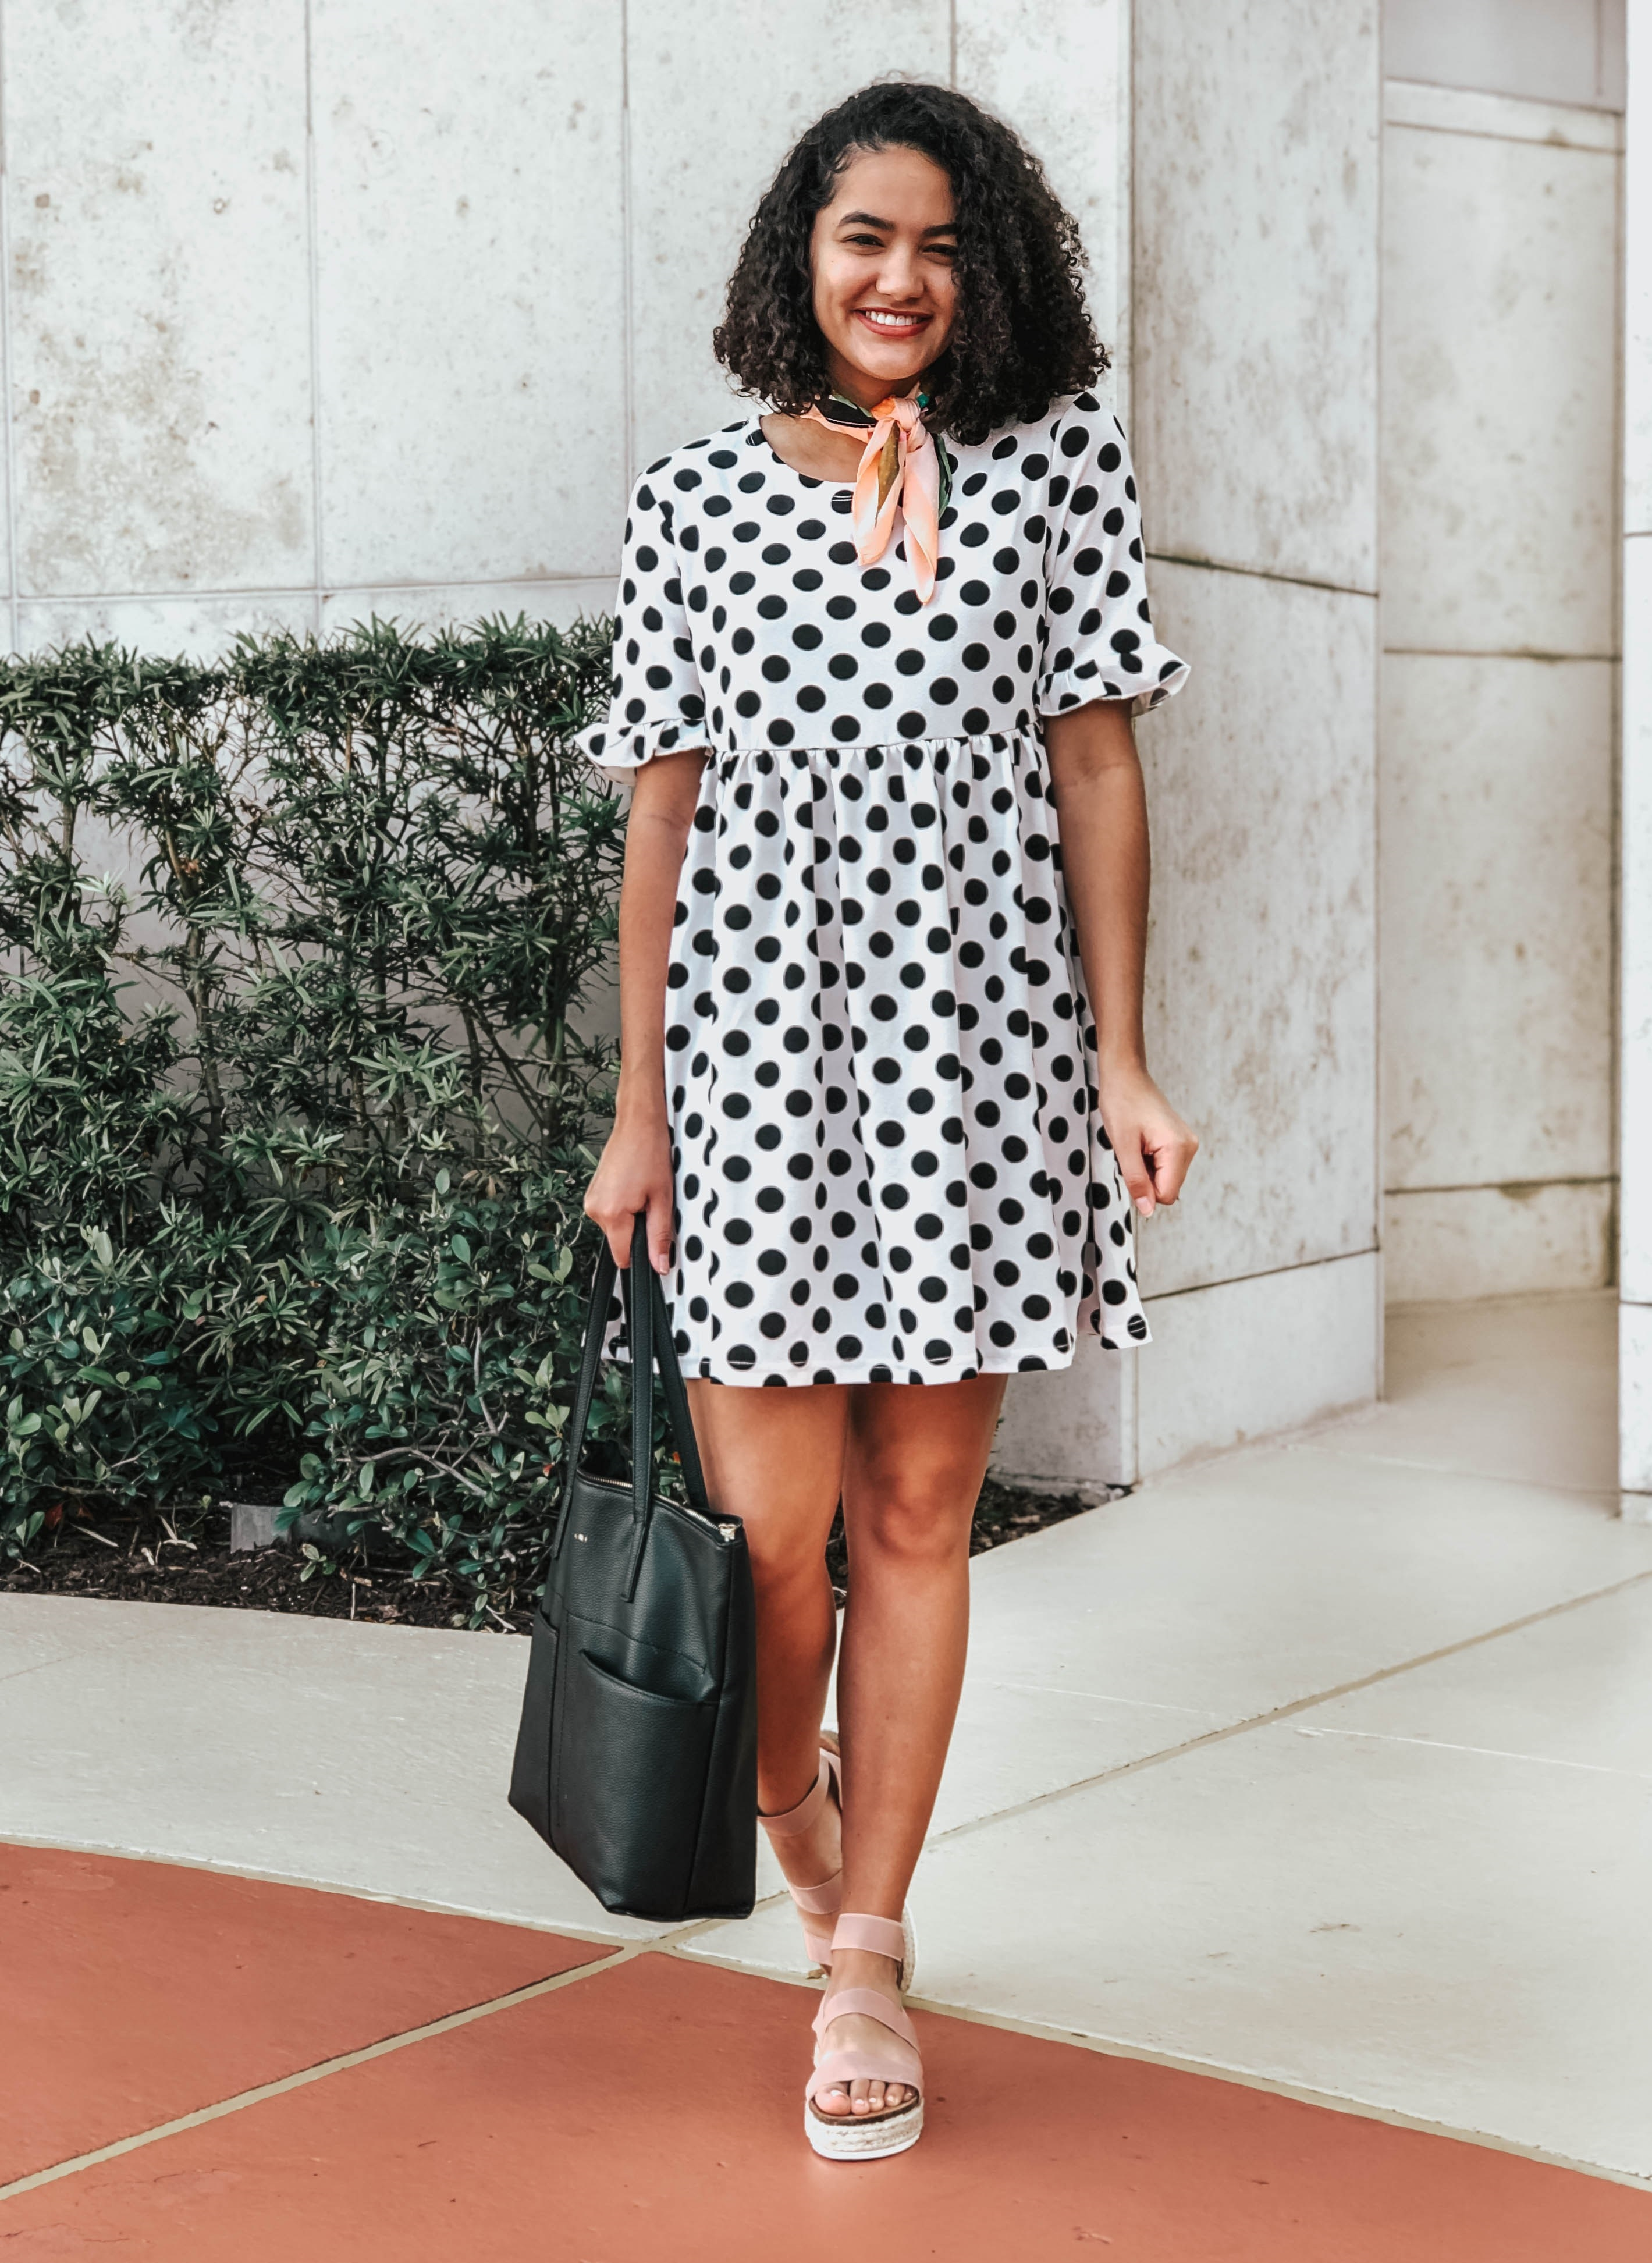 Polka dot Ruffle Dress and Blush Pink Espadrille Wedges and a Neck Scarf